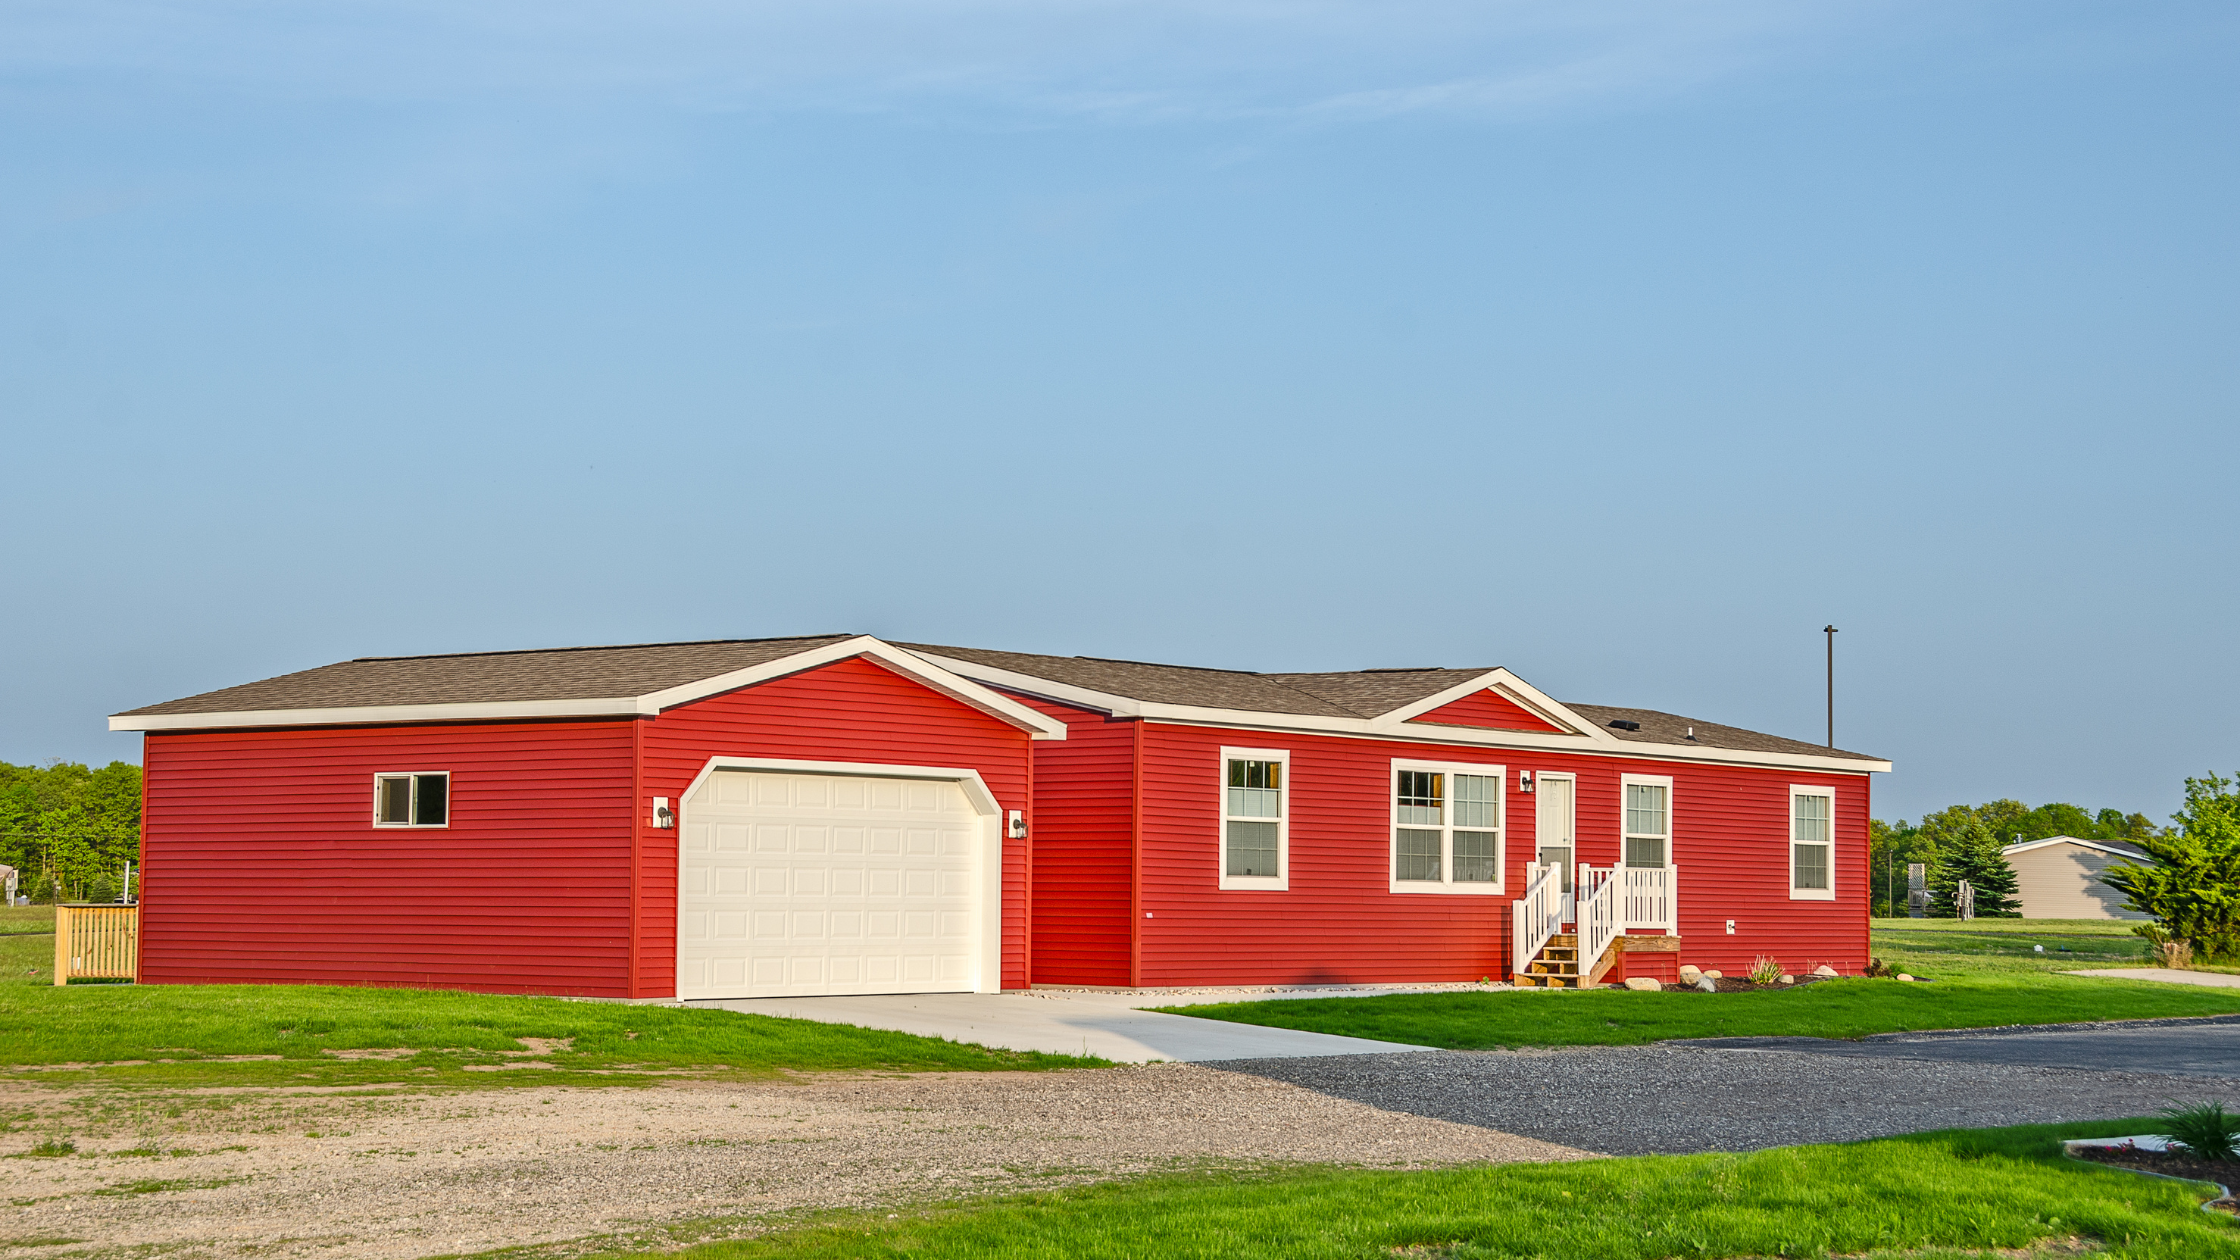 Benefits of Having Your Own Land for Your Manufactured Home